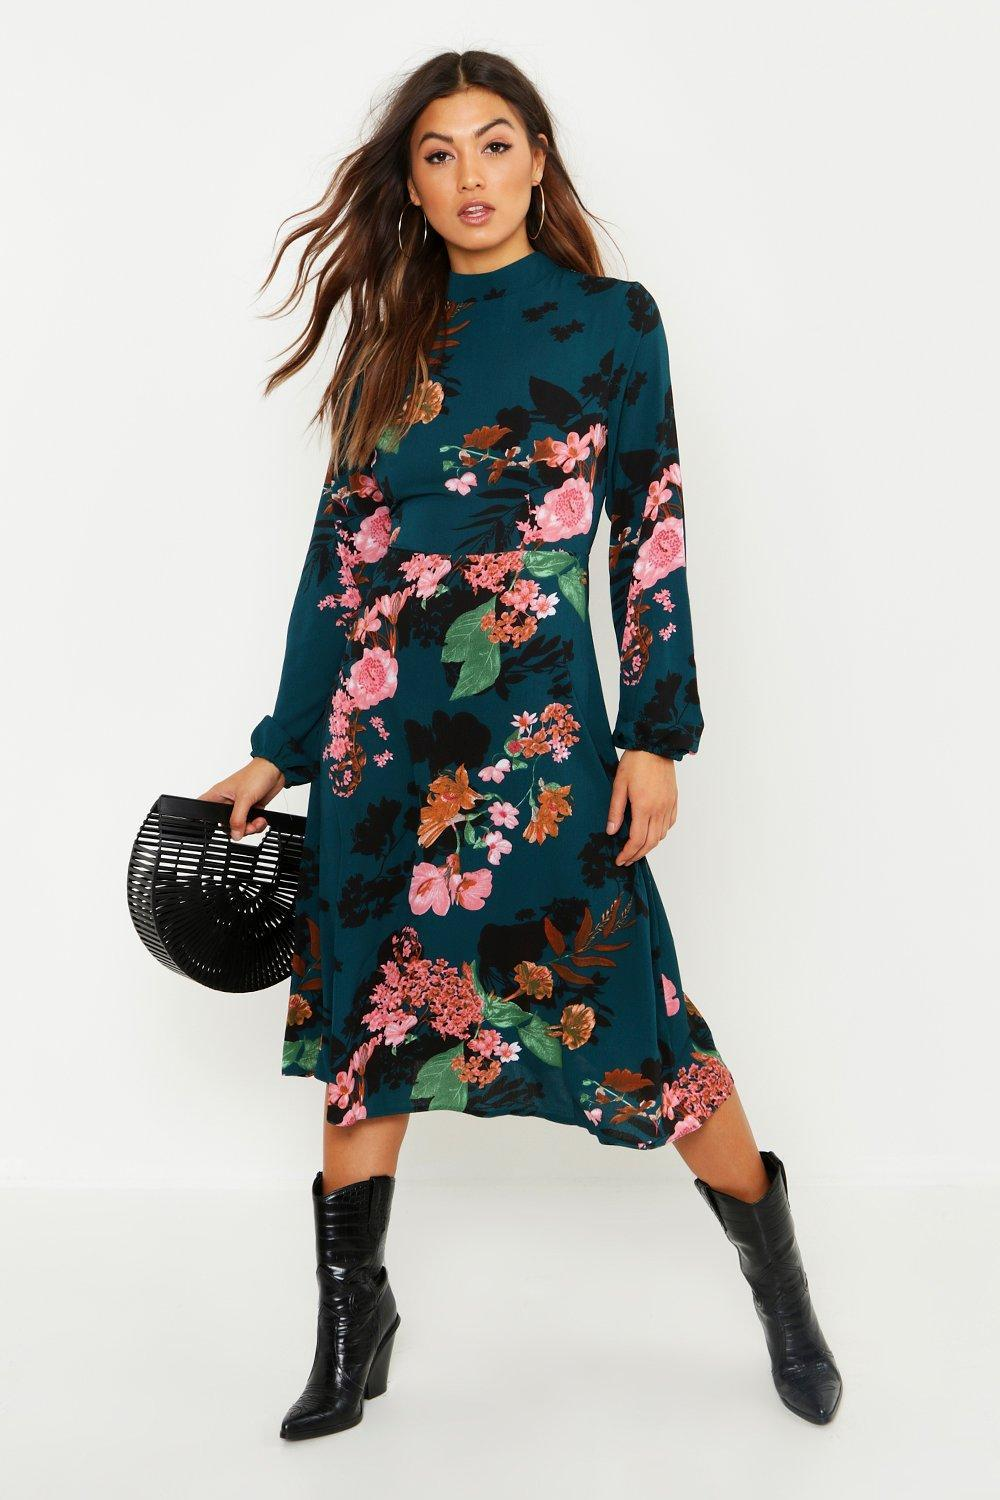 Lyst - Boohoo Floral Volume Sleeve Skater Dress in Green 0a43aebfb3